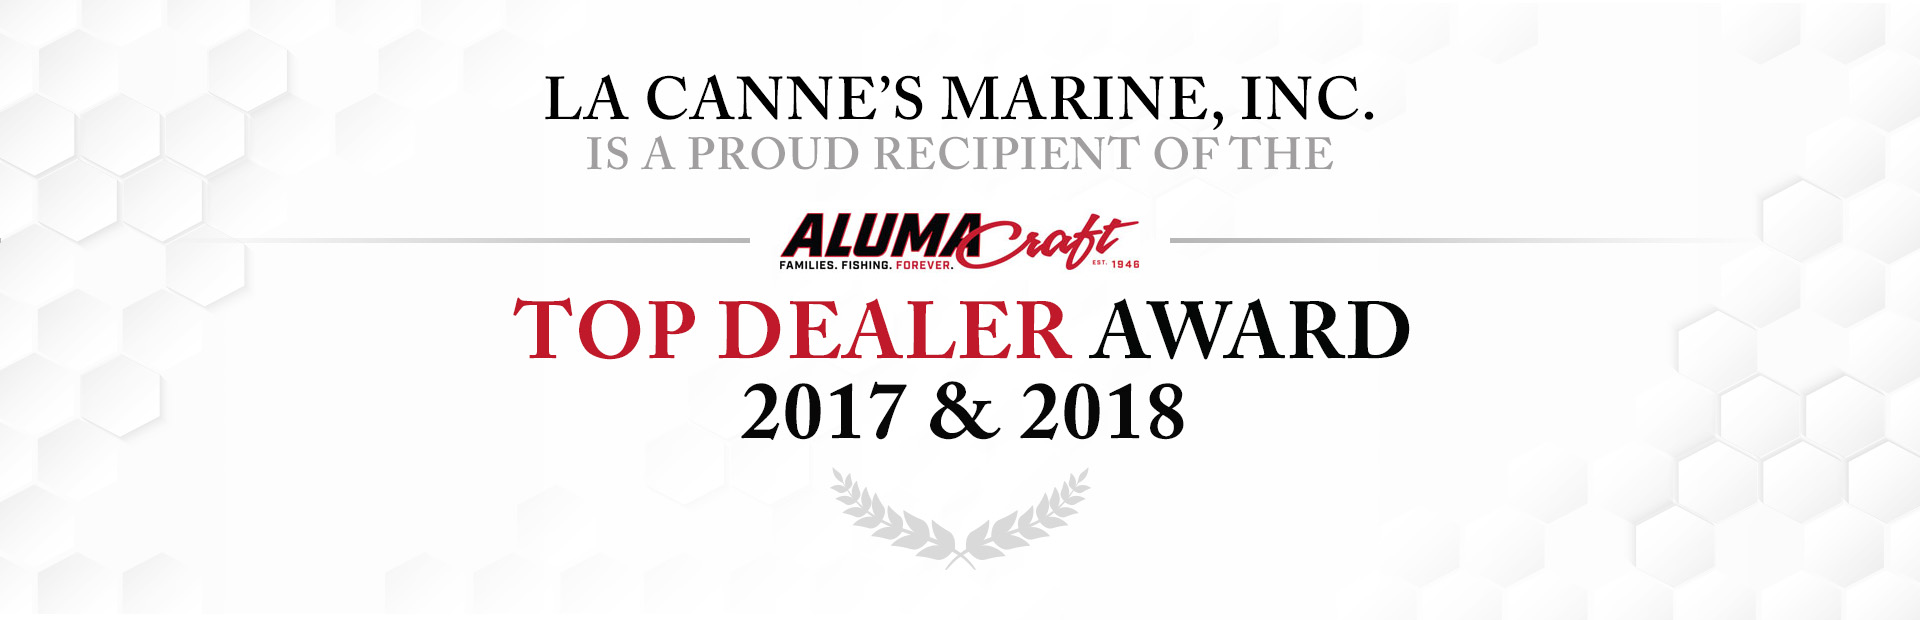 Alumnacraft Dealer of the Year